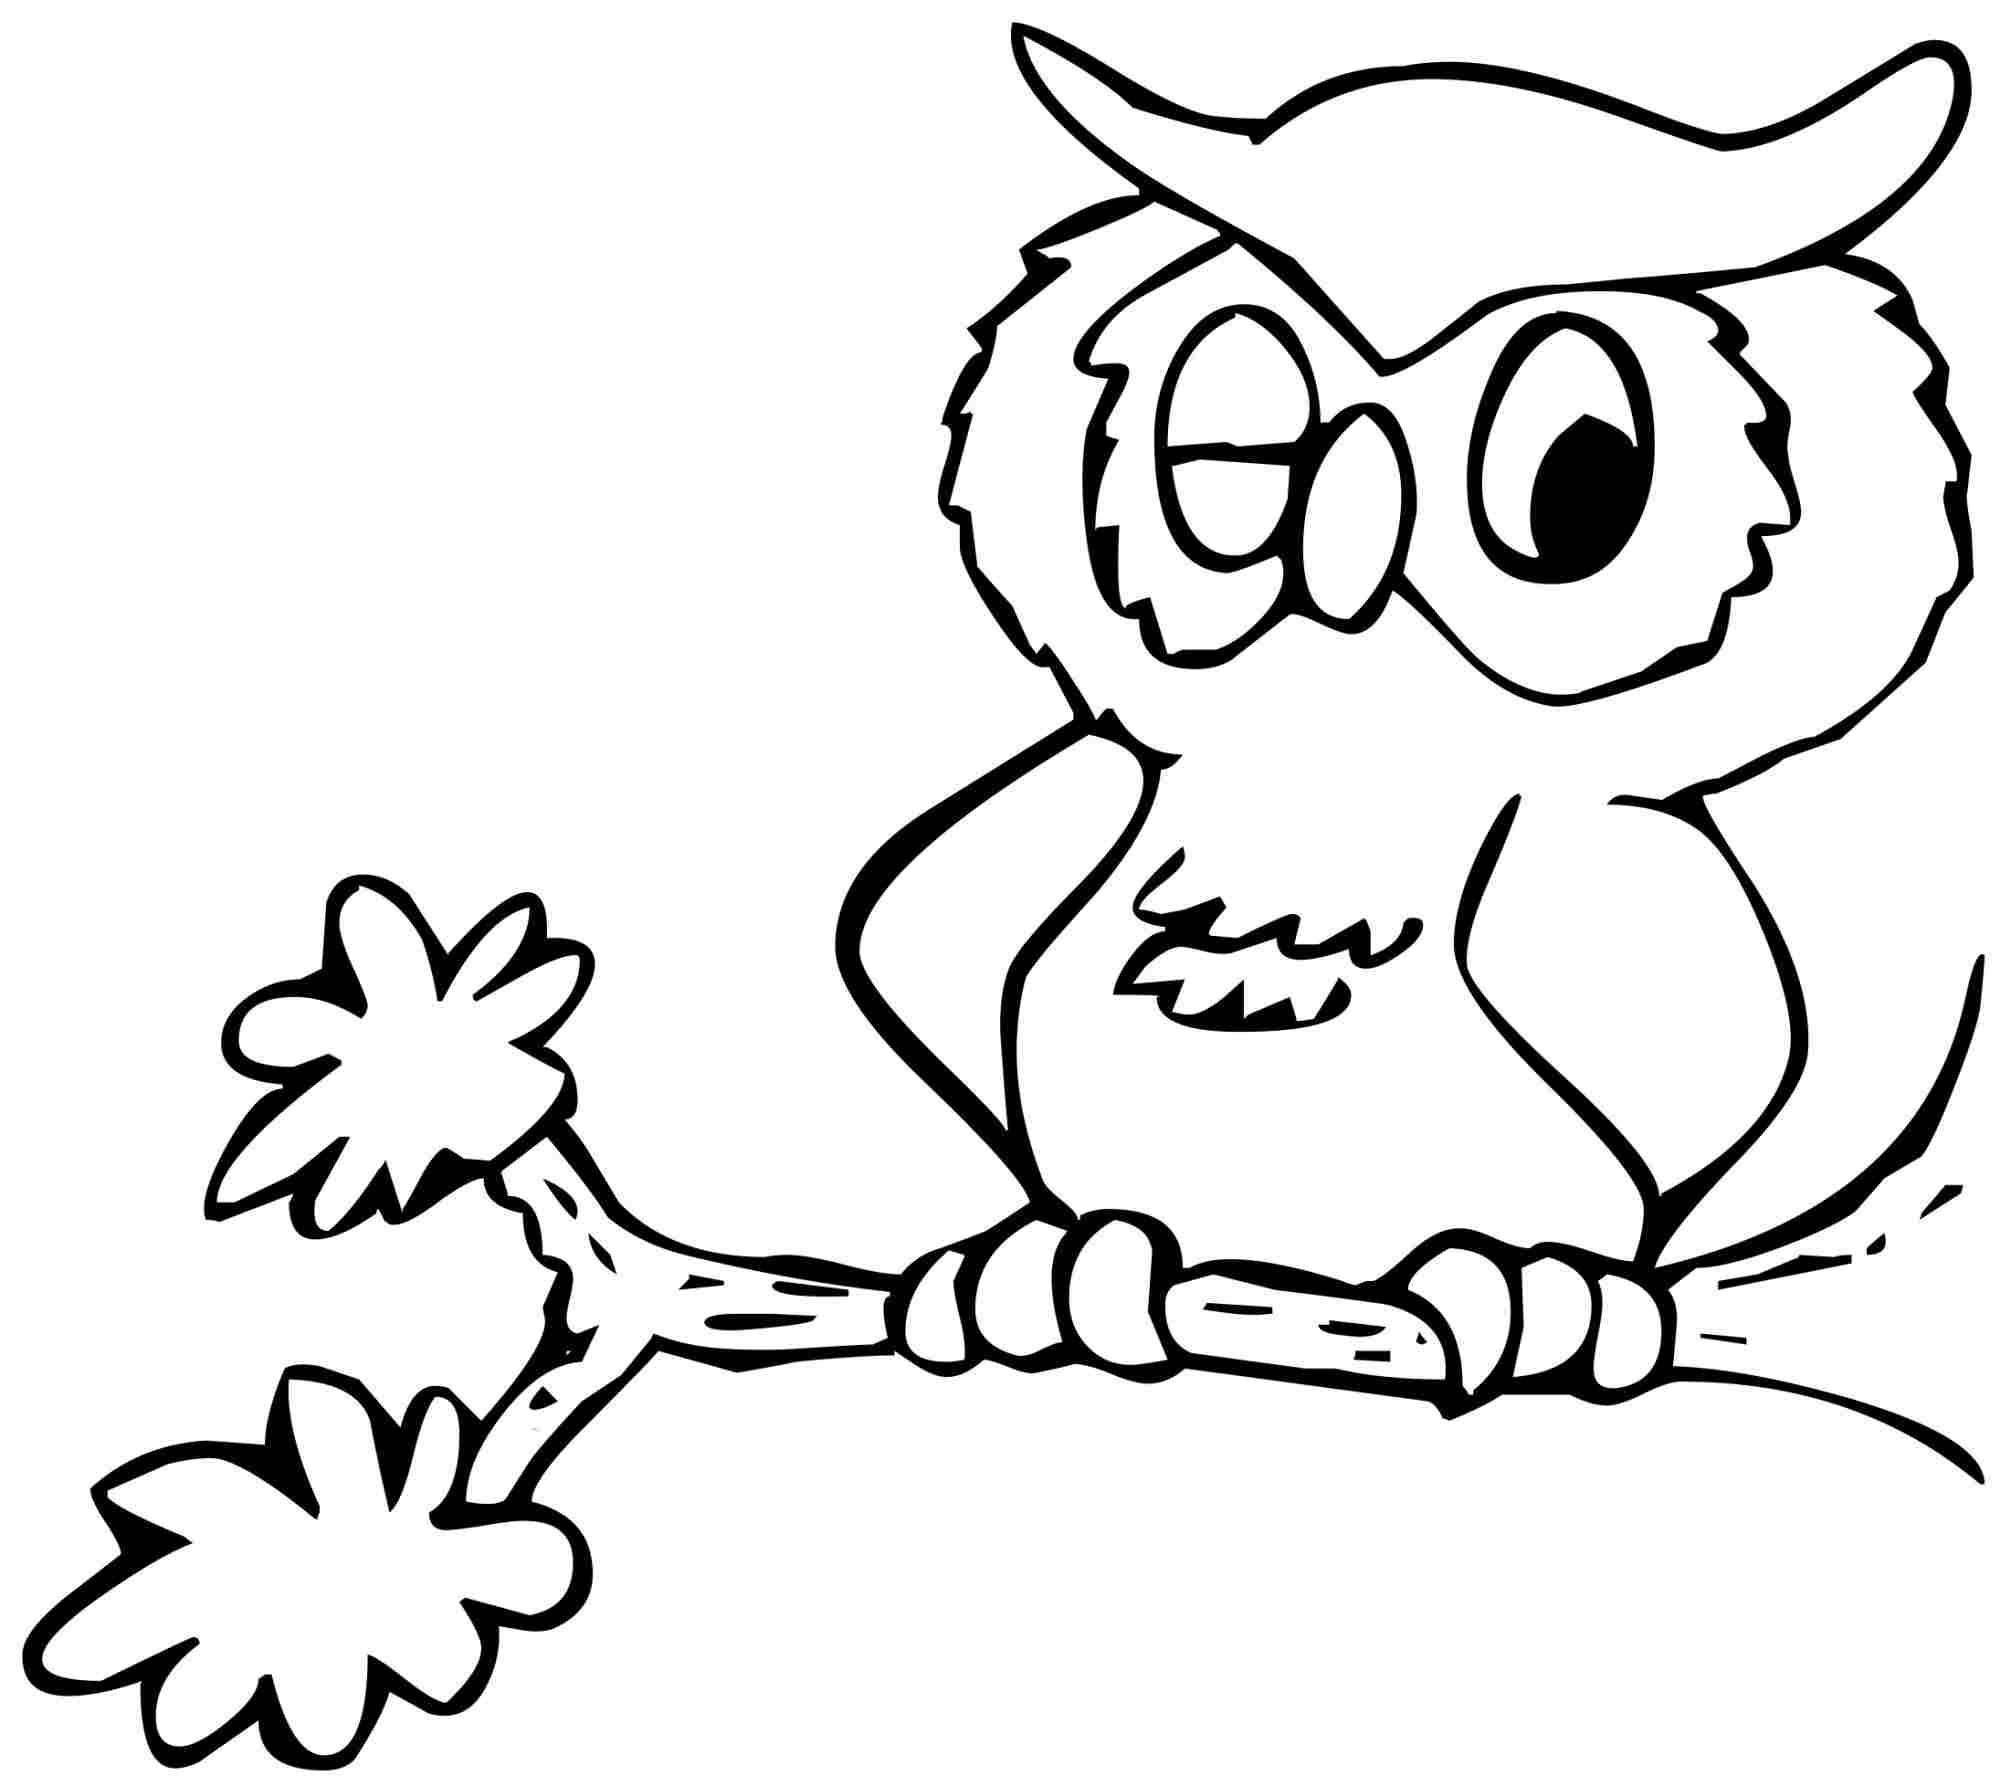 Coloring Pages For Girls: Animal Coloring Pages For Teens